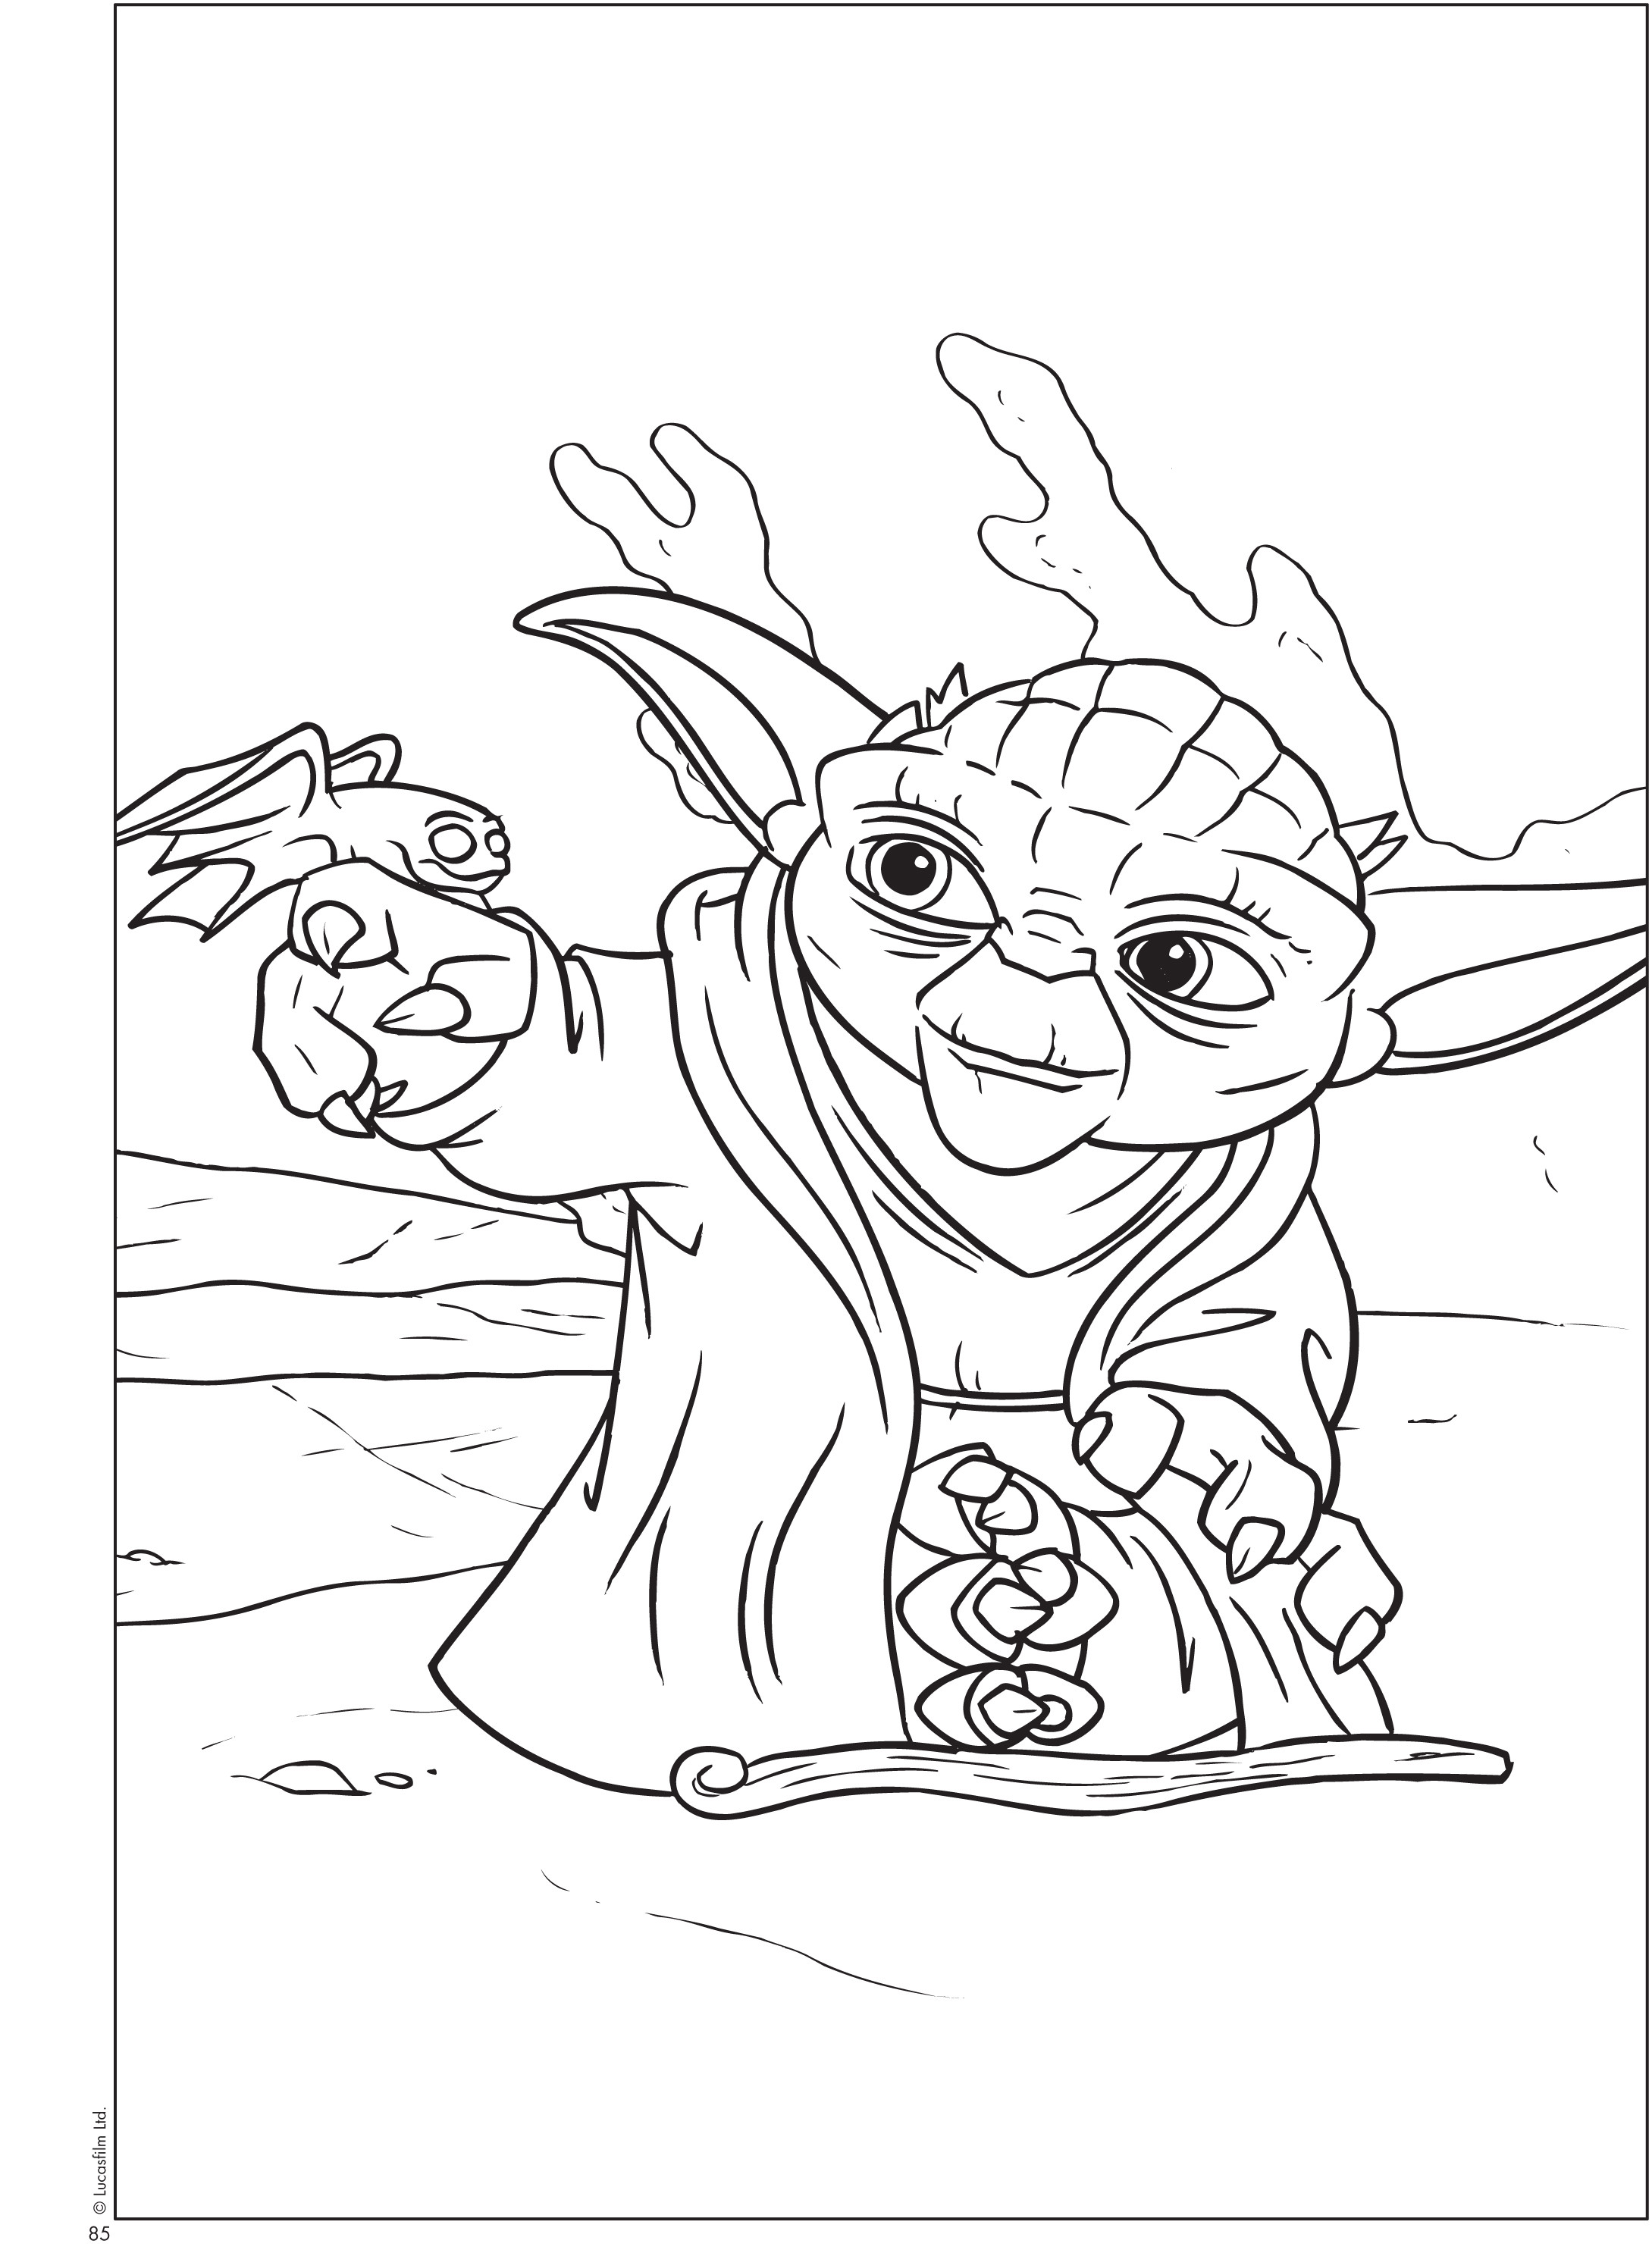 Star Wars Christmas Coloring Pages  FREE Printable Star Wars Coloring Sheets Queen of Free